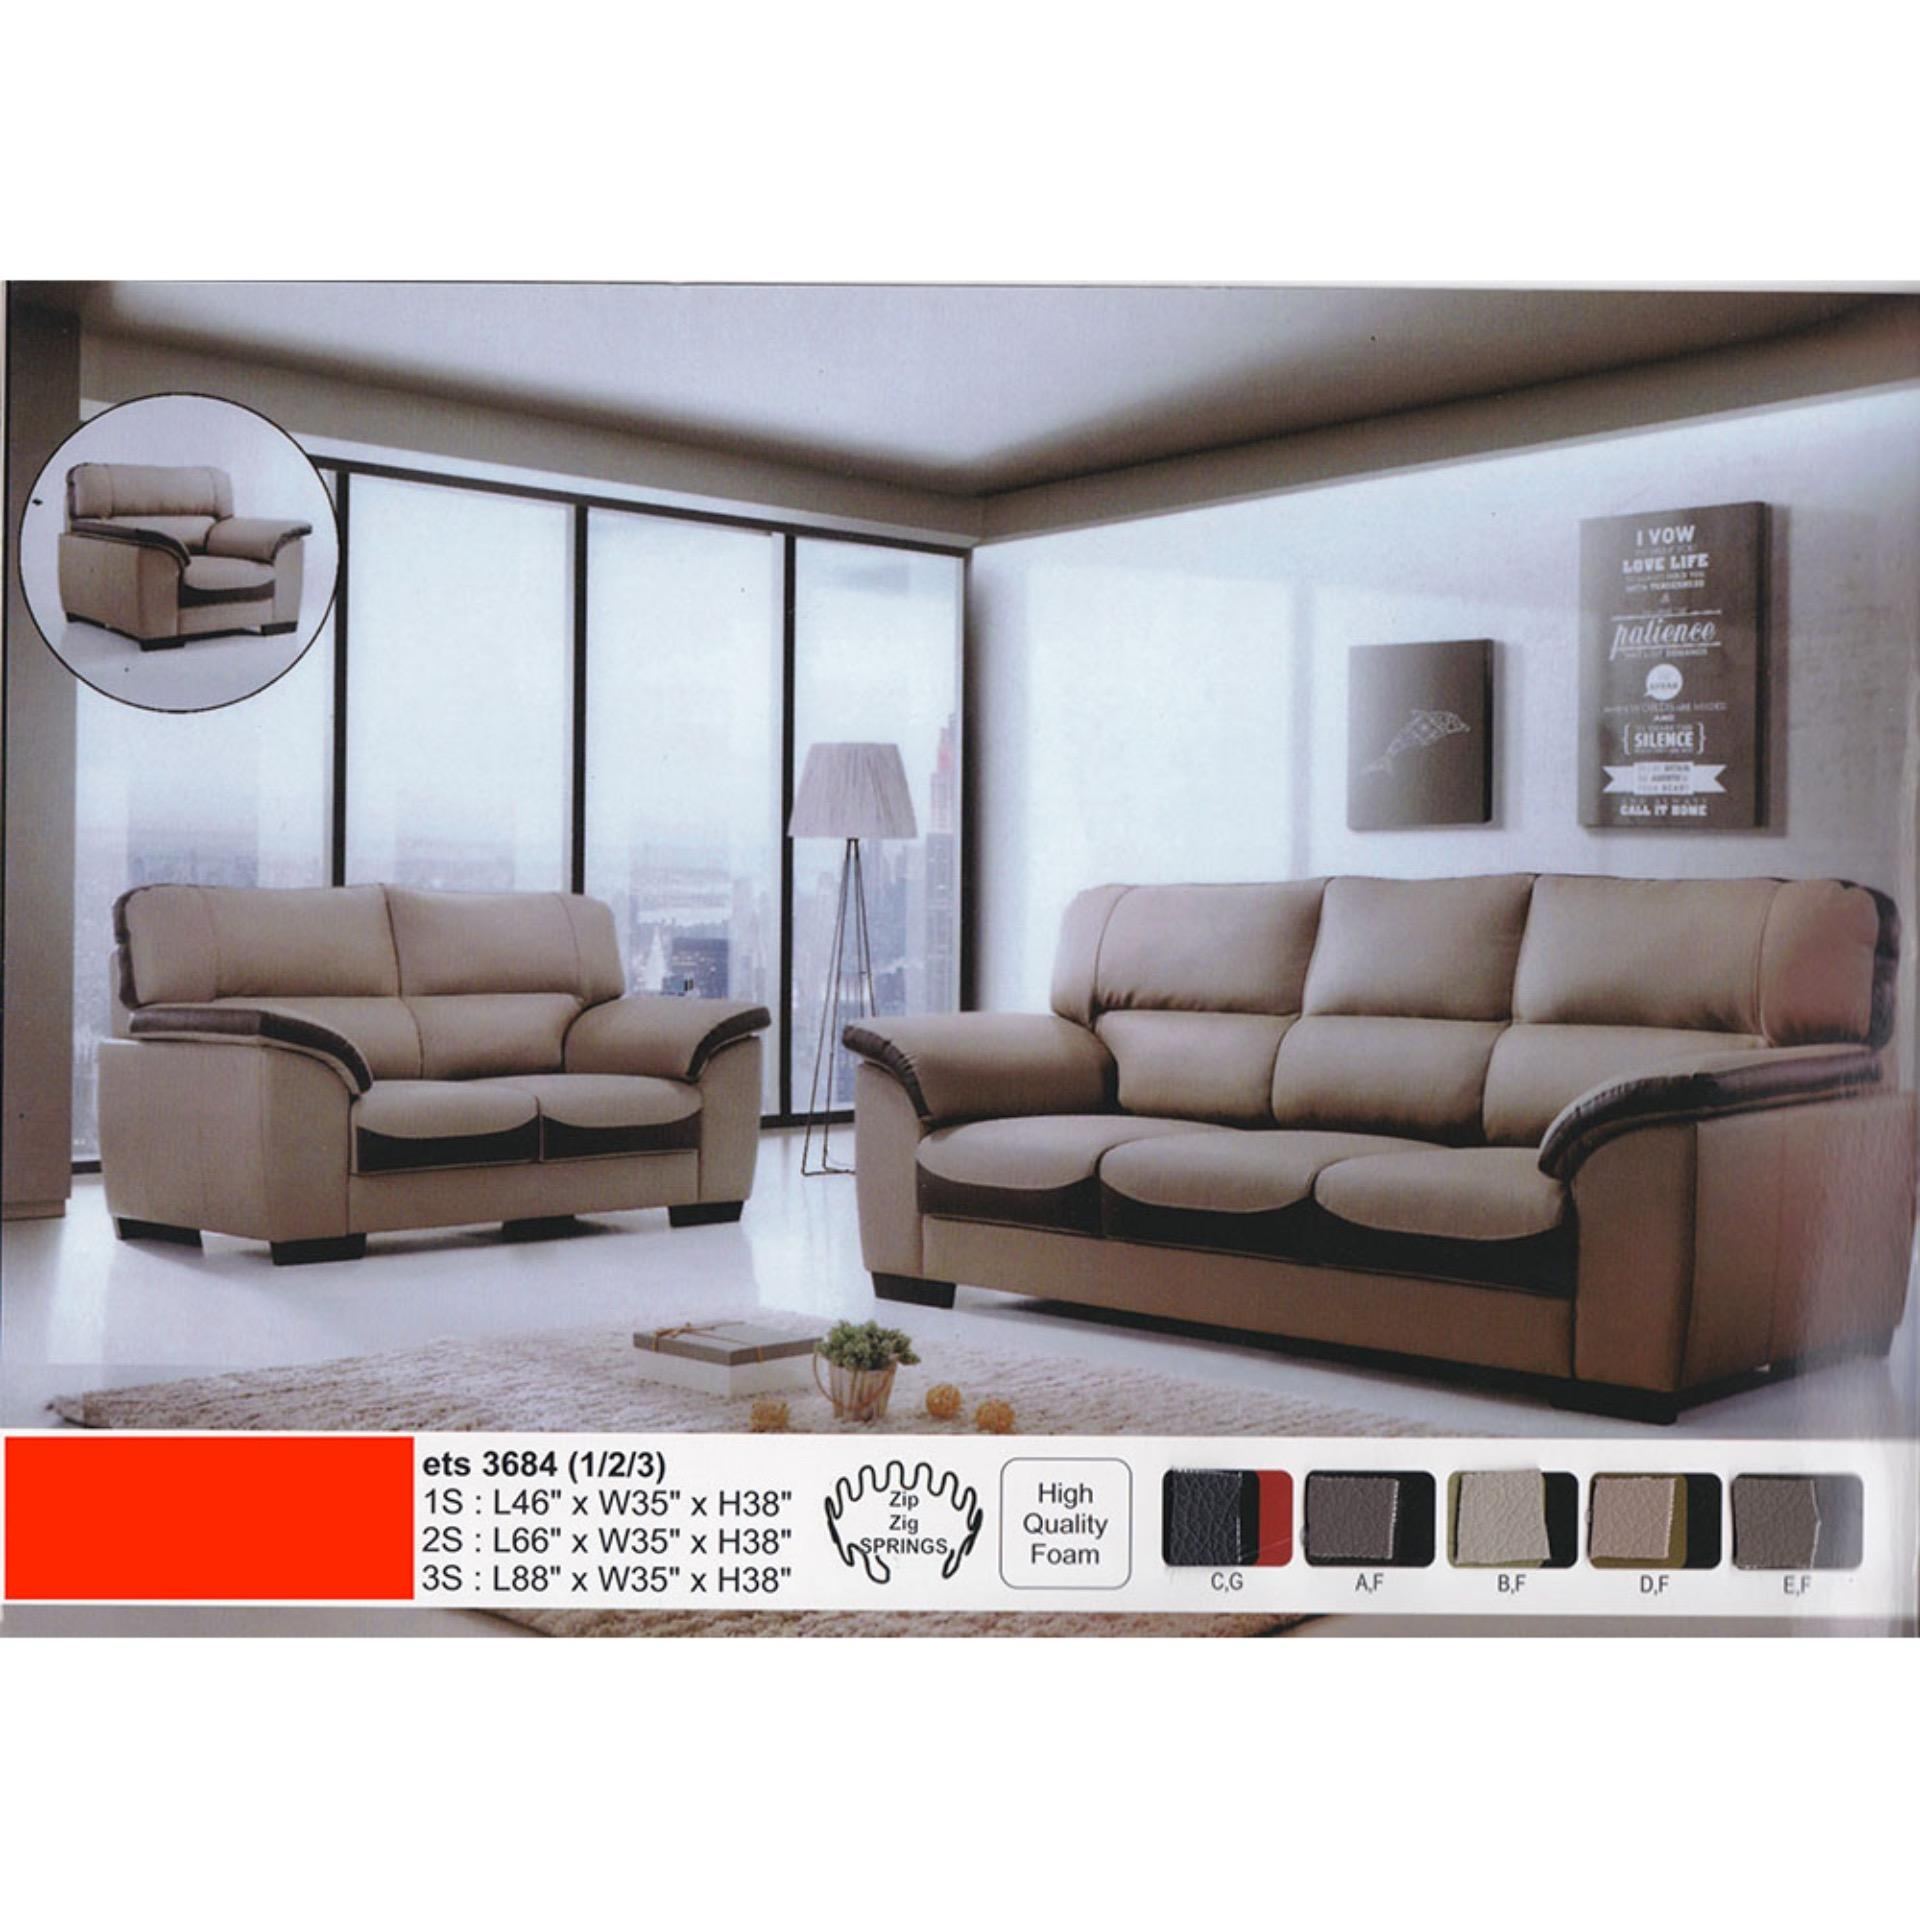 1+2+3 Seater Leather Sofa Lounge Chair Relax Sofa Set Grey + Dark Brow